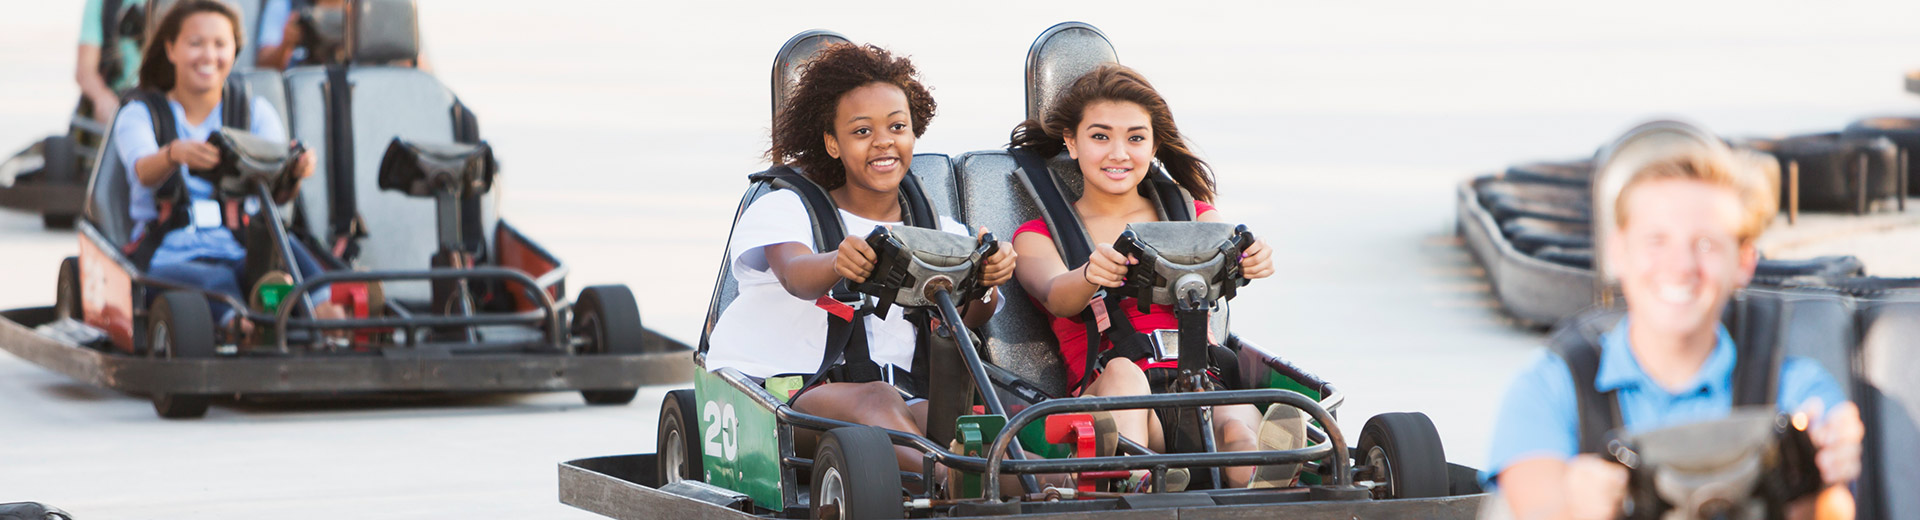 Go Karts | Adventure Landing Family Entertainment Center | Dallas, TX